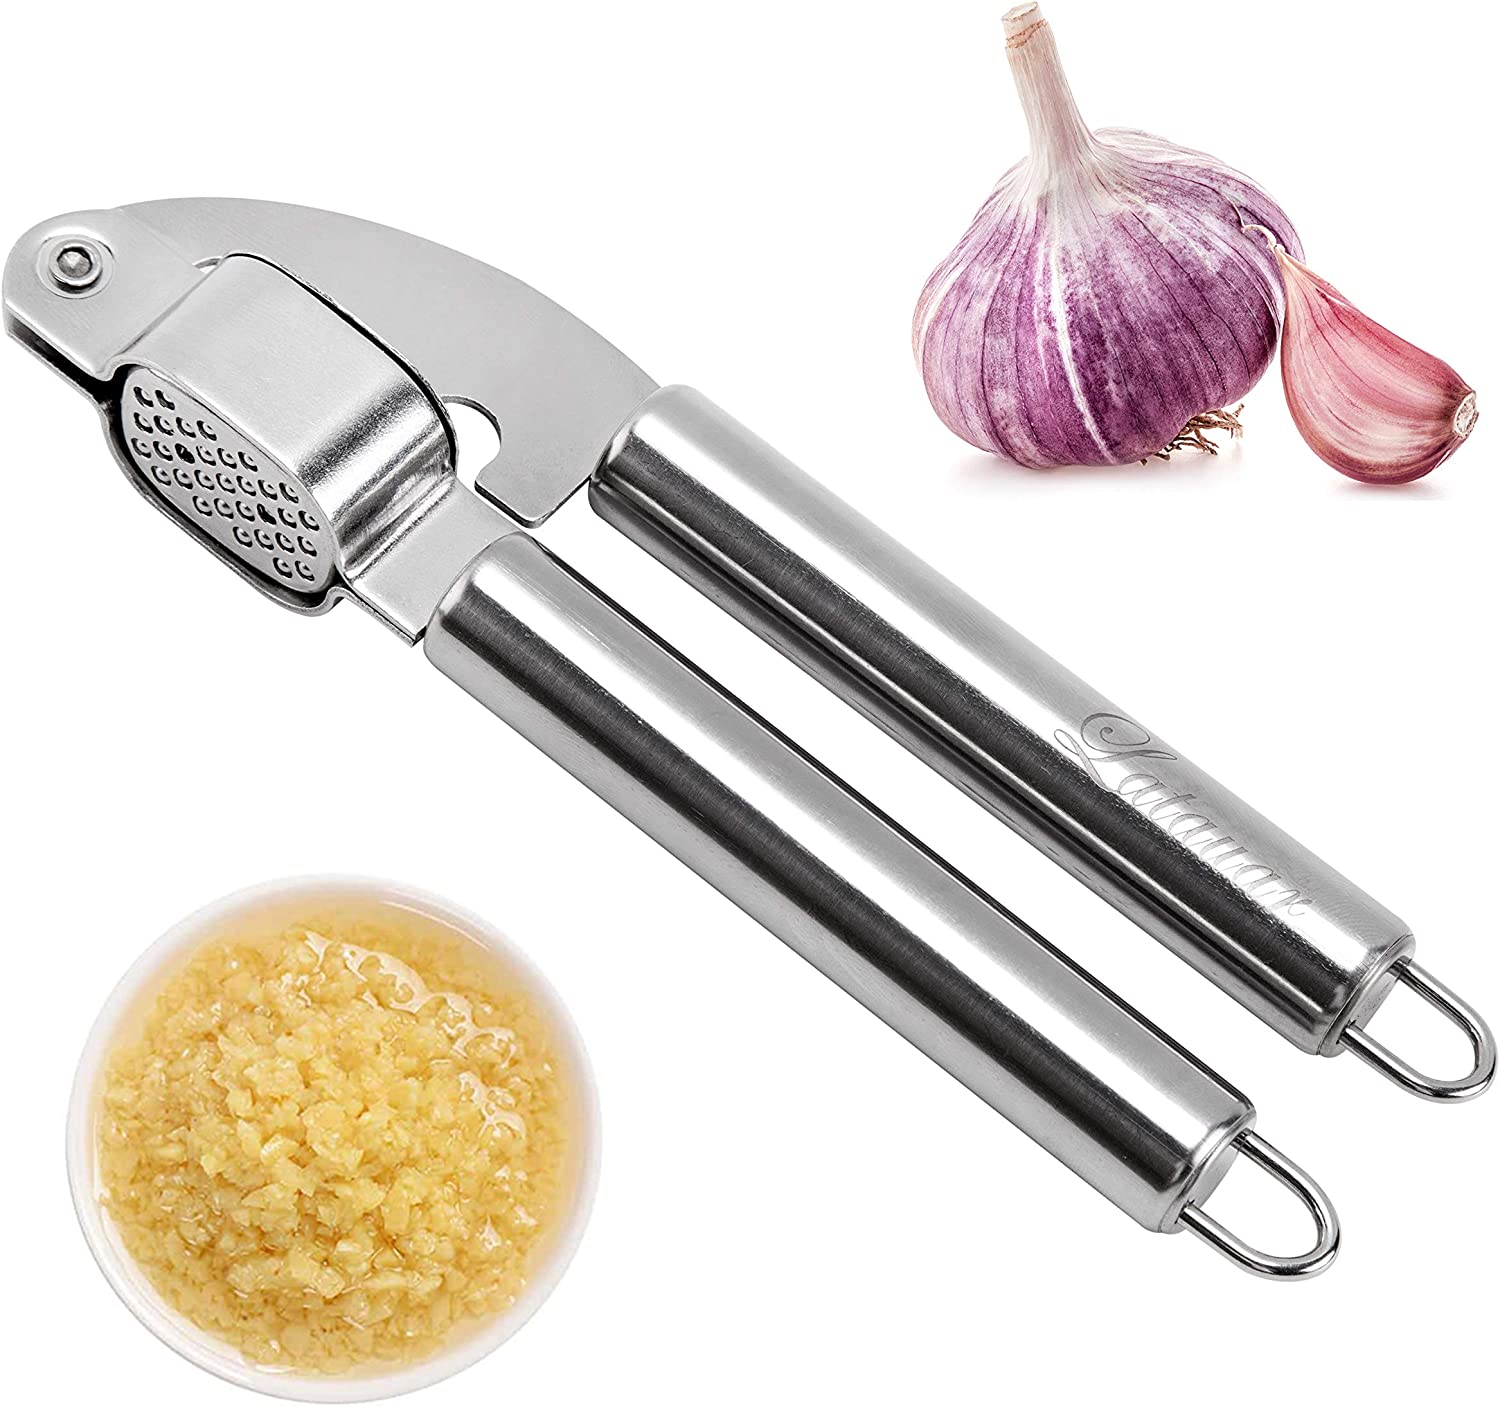 Latauar Garlic Press, Stainless Steel Mincer and Crusher with Garlic Rocker and Peeler Set NEW DESIGN-Professional Grade, Dishwasher safe, Rust-proof